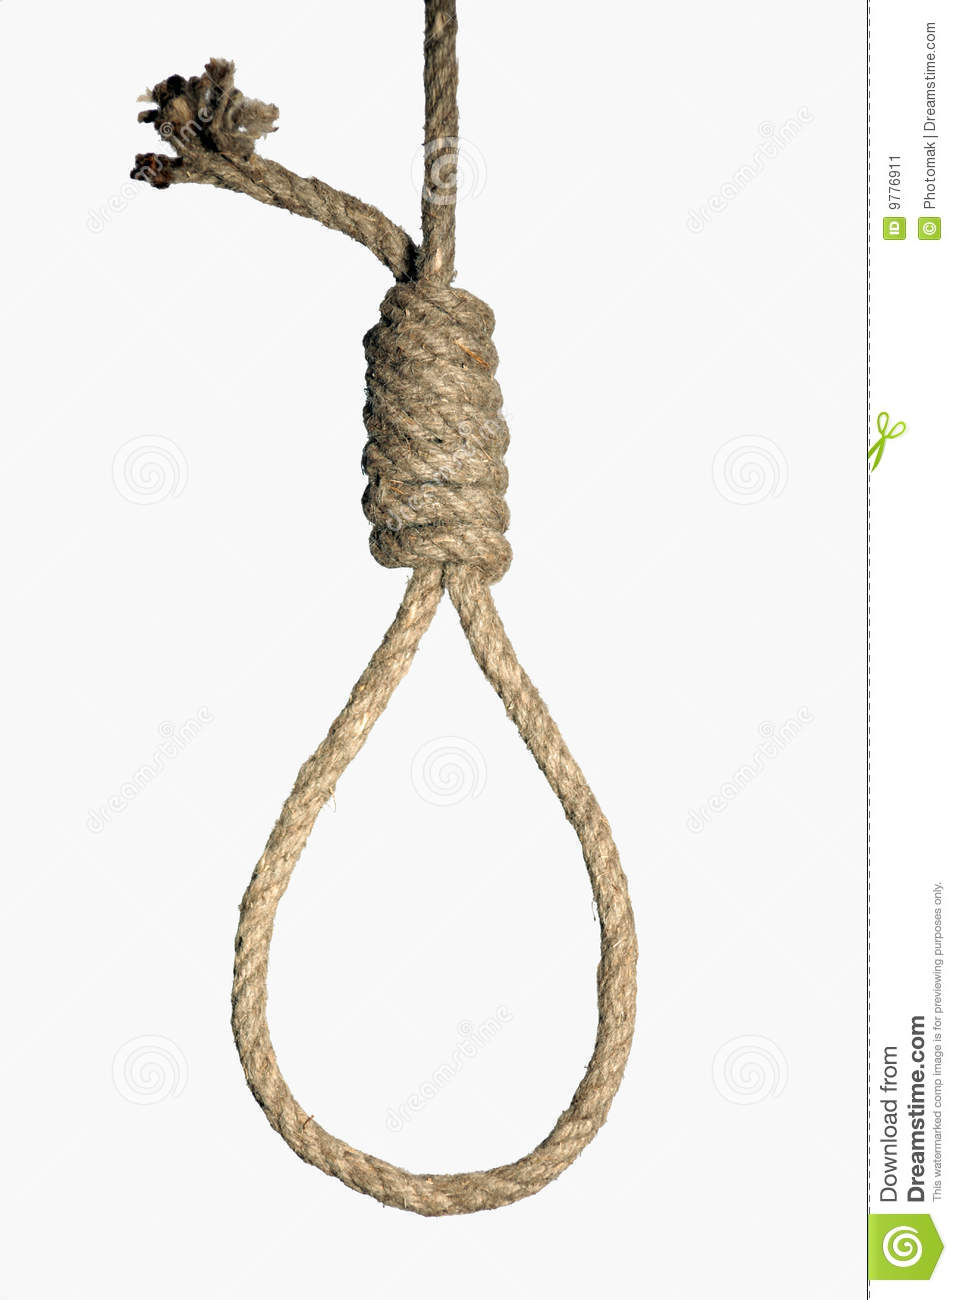 Hangman's Noose On White Background Stock Image - Image of ...